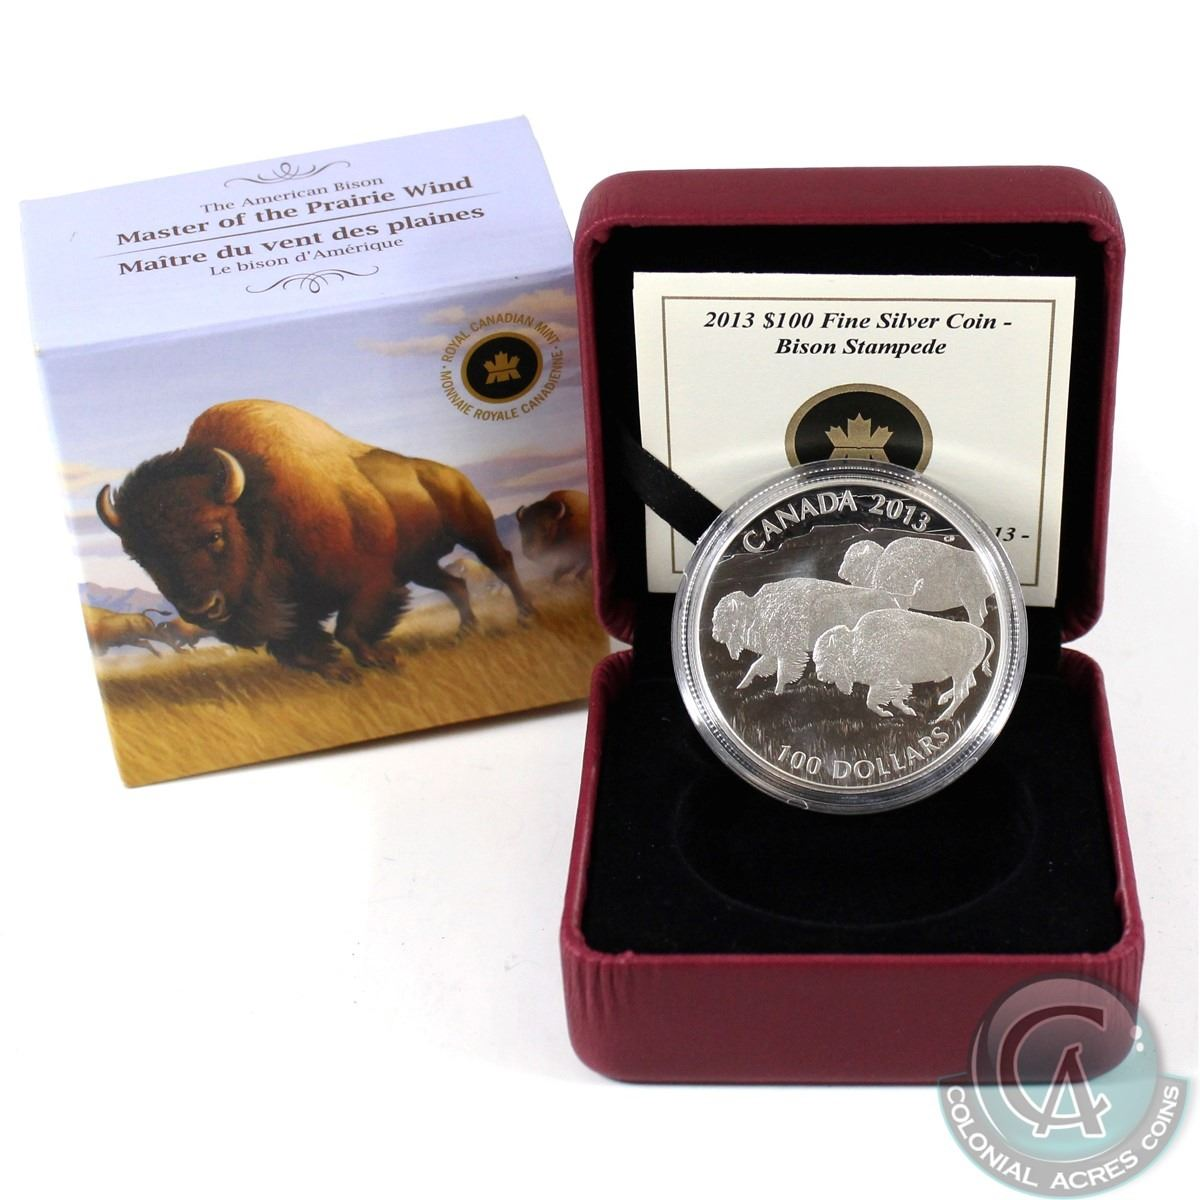 CANADA 2013 $100 for $100 Fine Silver Coin Bison Stampede